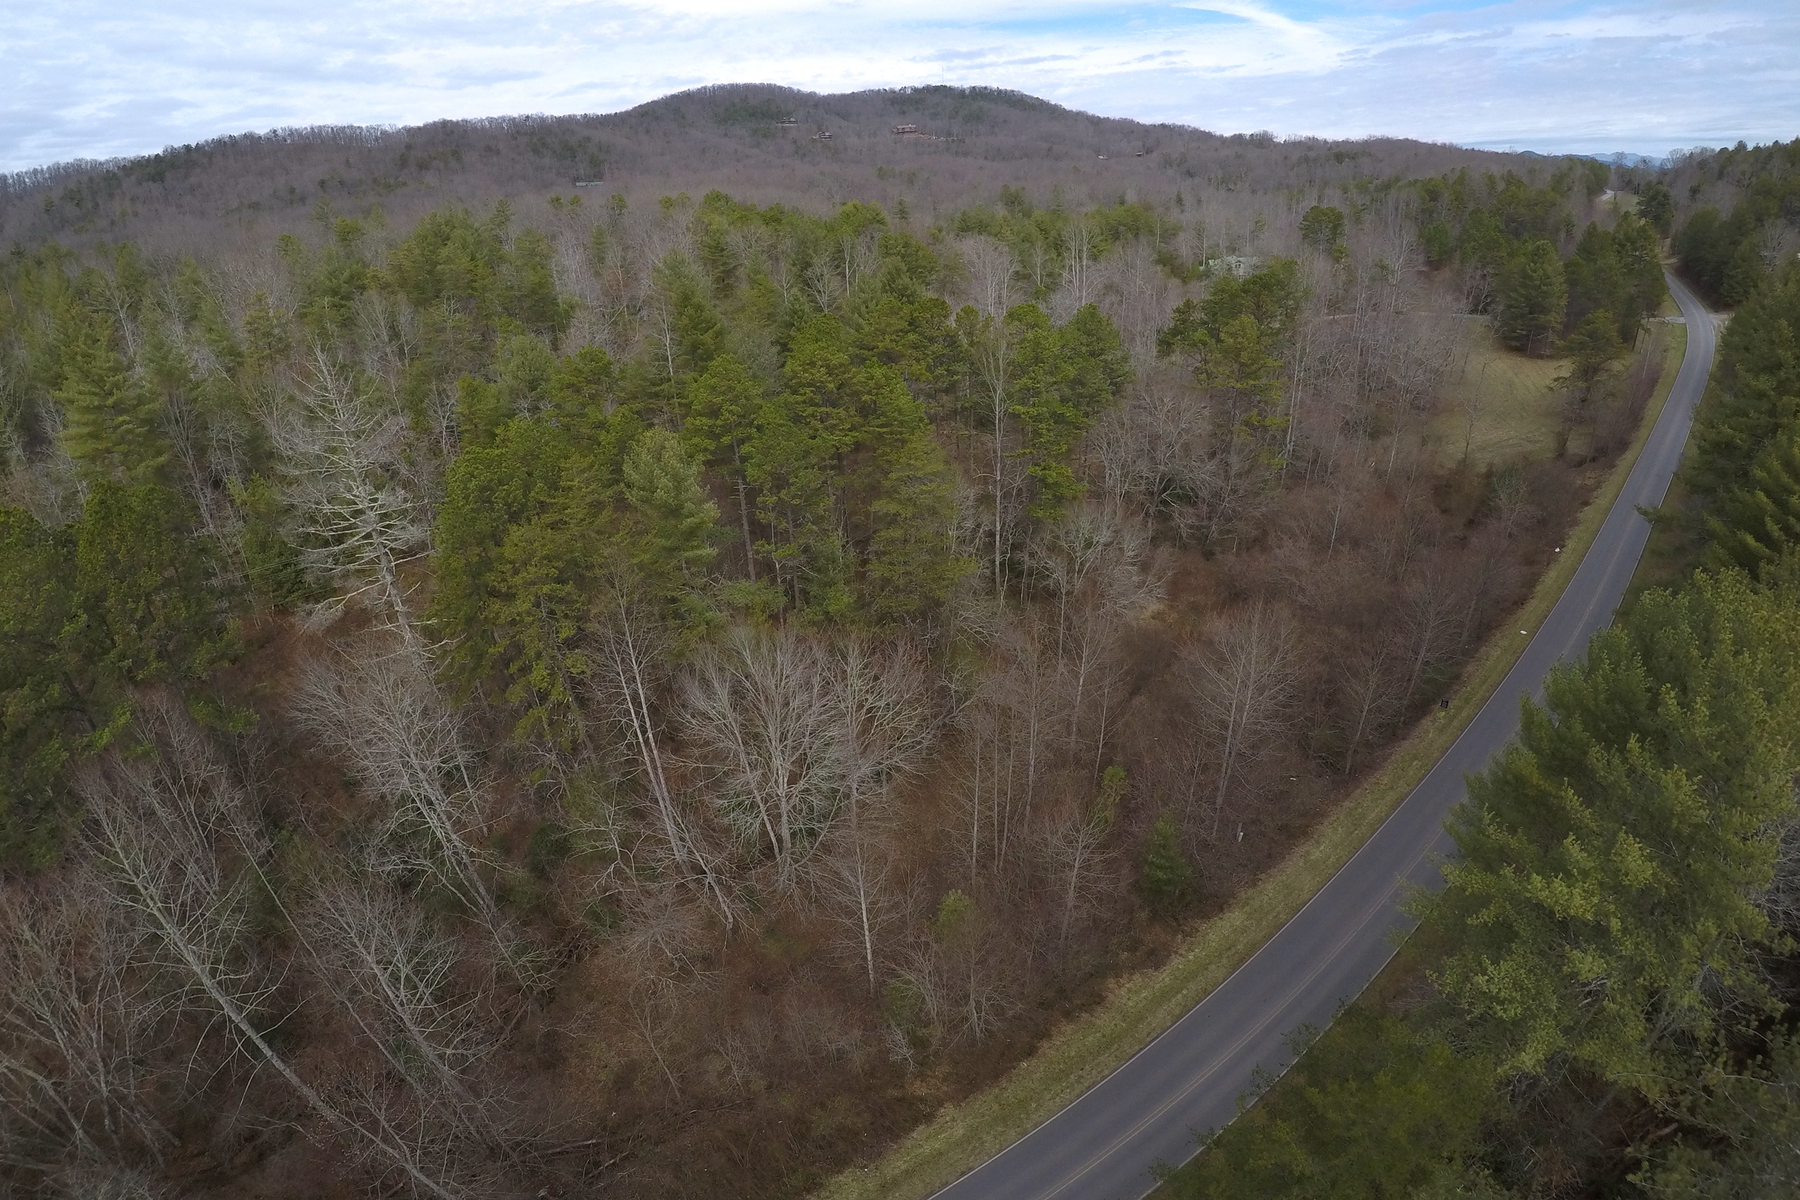 Terreno por un Venta en Beautiful Mountain Acreage with Long Range Views 0 Hardscrabble Road Mineral Bluff, Georgia, 30559 Estados Unidos